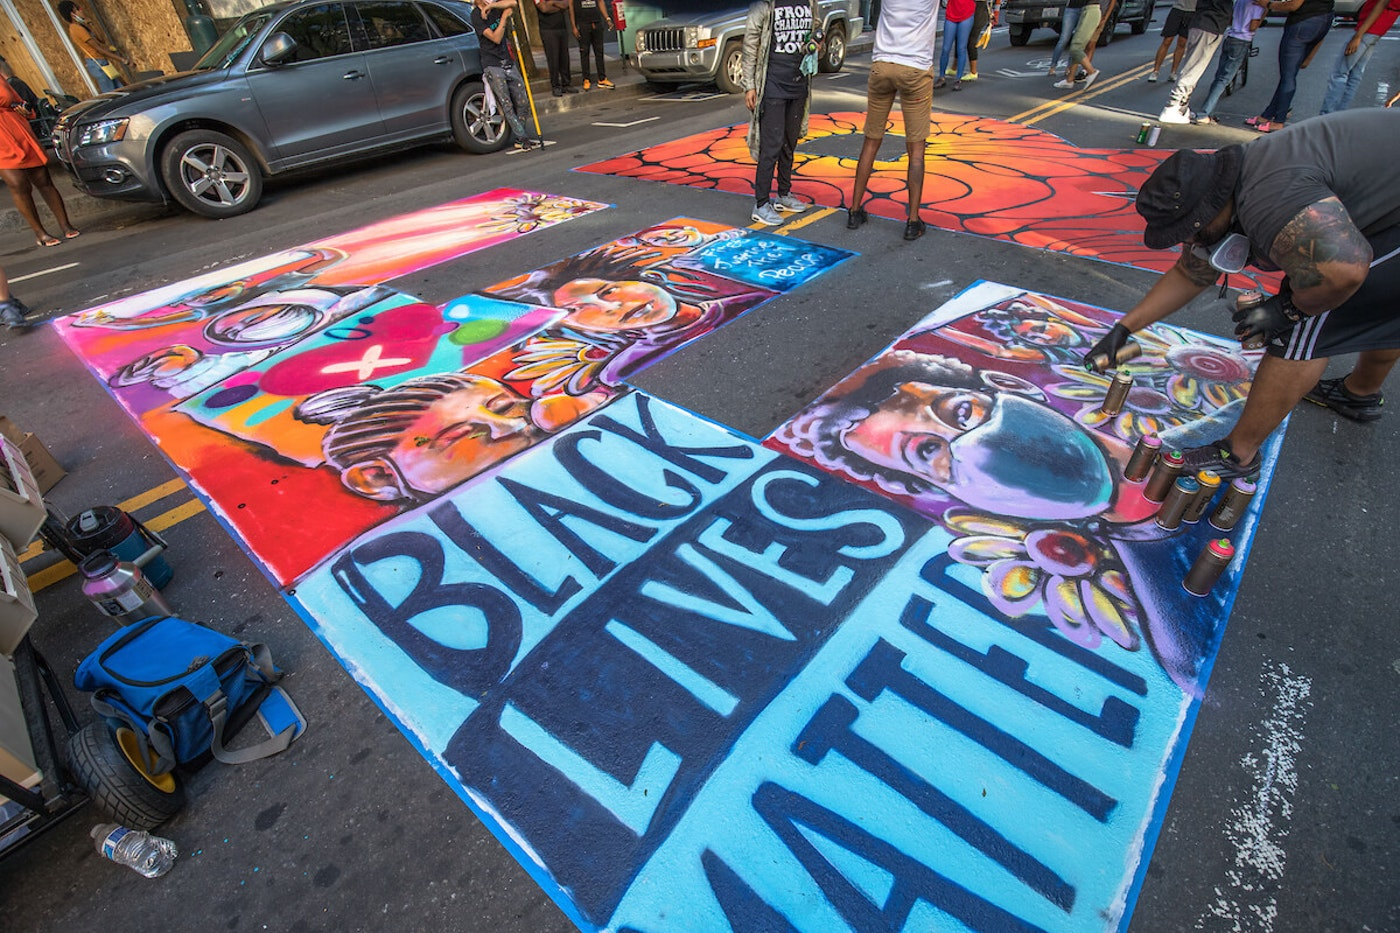 """Artist John Hairston was one of 16 artists painting a letter in the phrase """"Black Lives Matter"""" on Tryon Street in uptown Charlotte. (Cardinal & Pine photo by Grant Baldwin)."""